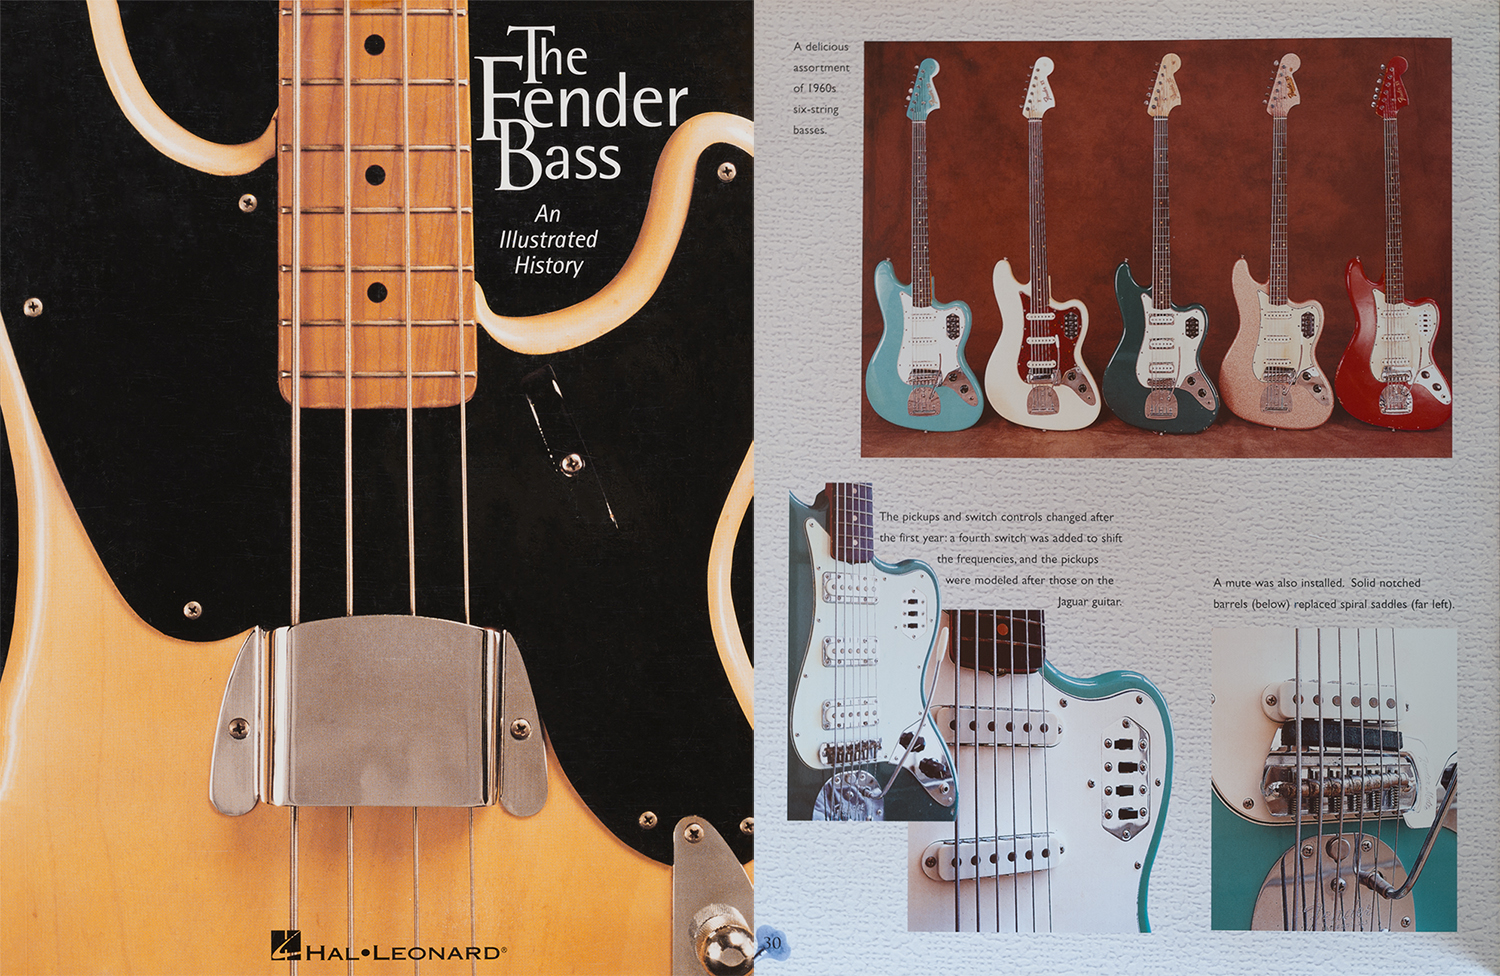 The Foam Green bass has also been published in my Fender Bass book on pg. 30, along with an equally rare SHERWOOD Green example which I also plan to display in the museum when time permits.